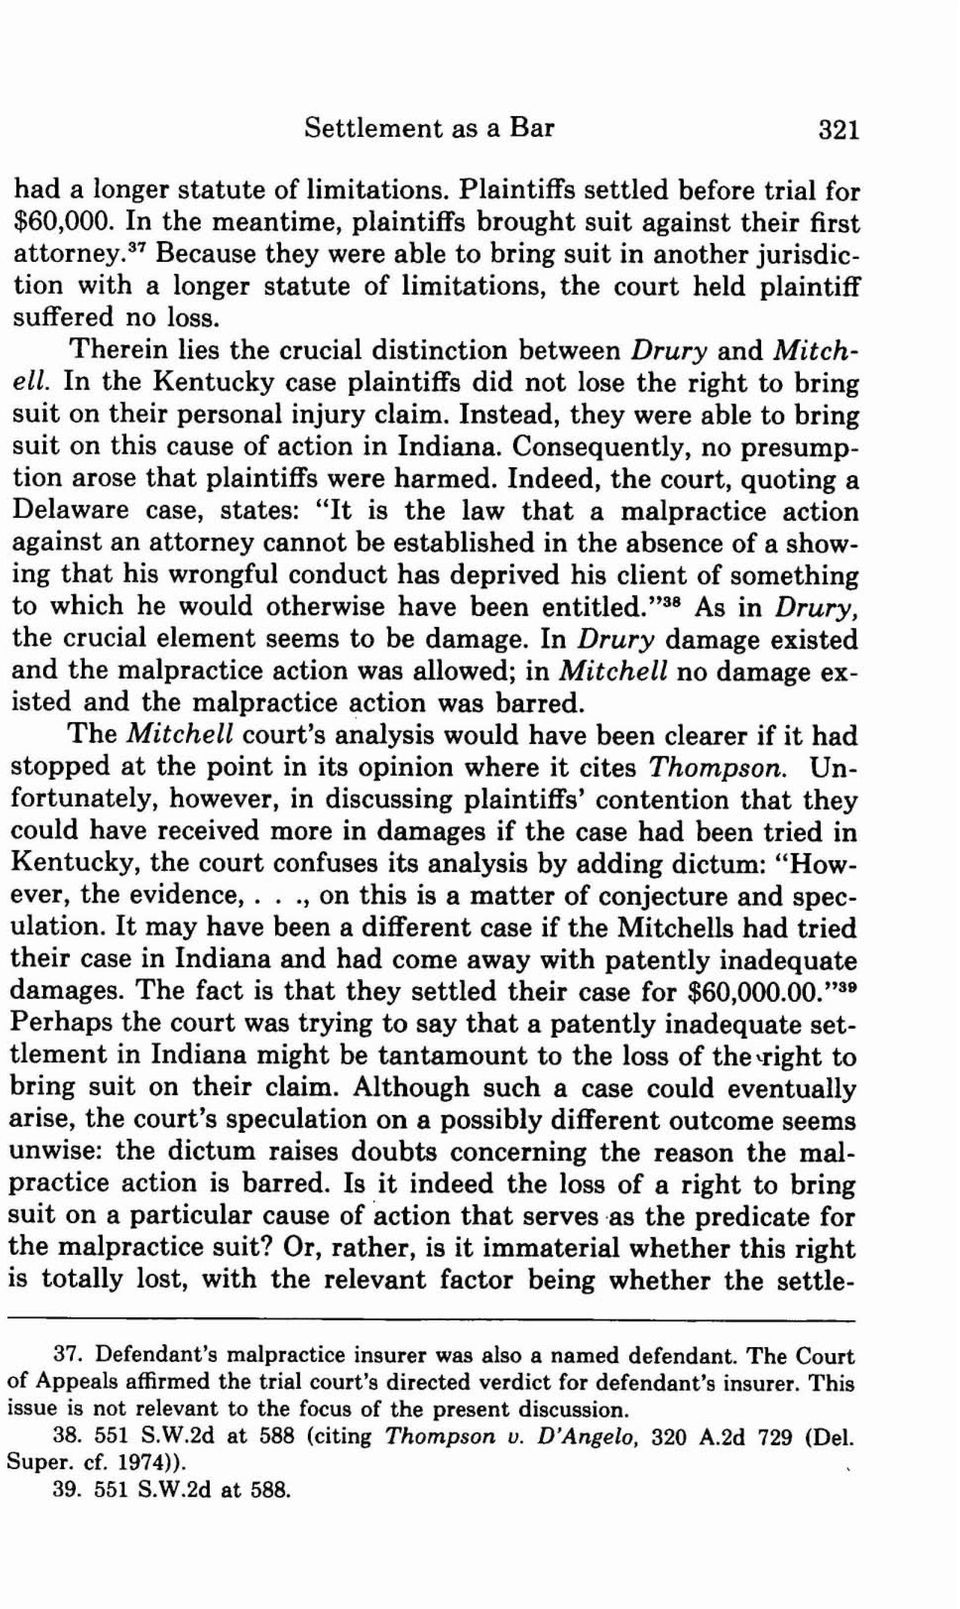 Therein lies the crucial distinction between Drury and Mitchell. In the Kentucky case plaintiffs did not lose the right to bring suit on their personal injury claim.